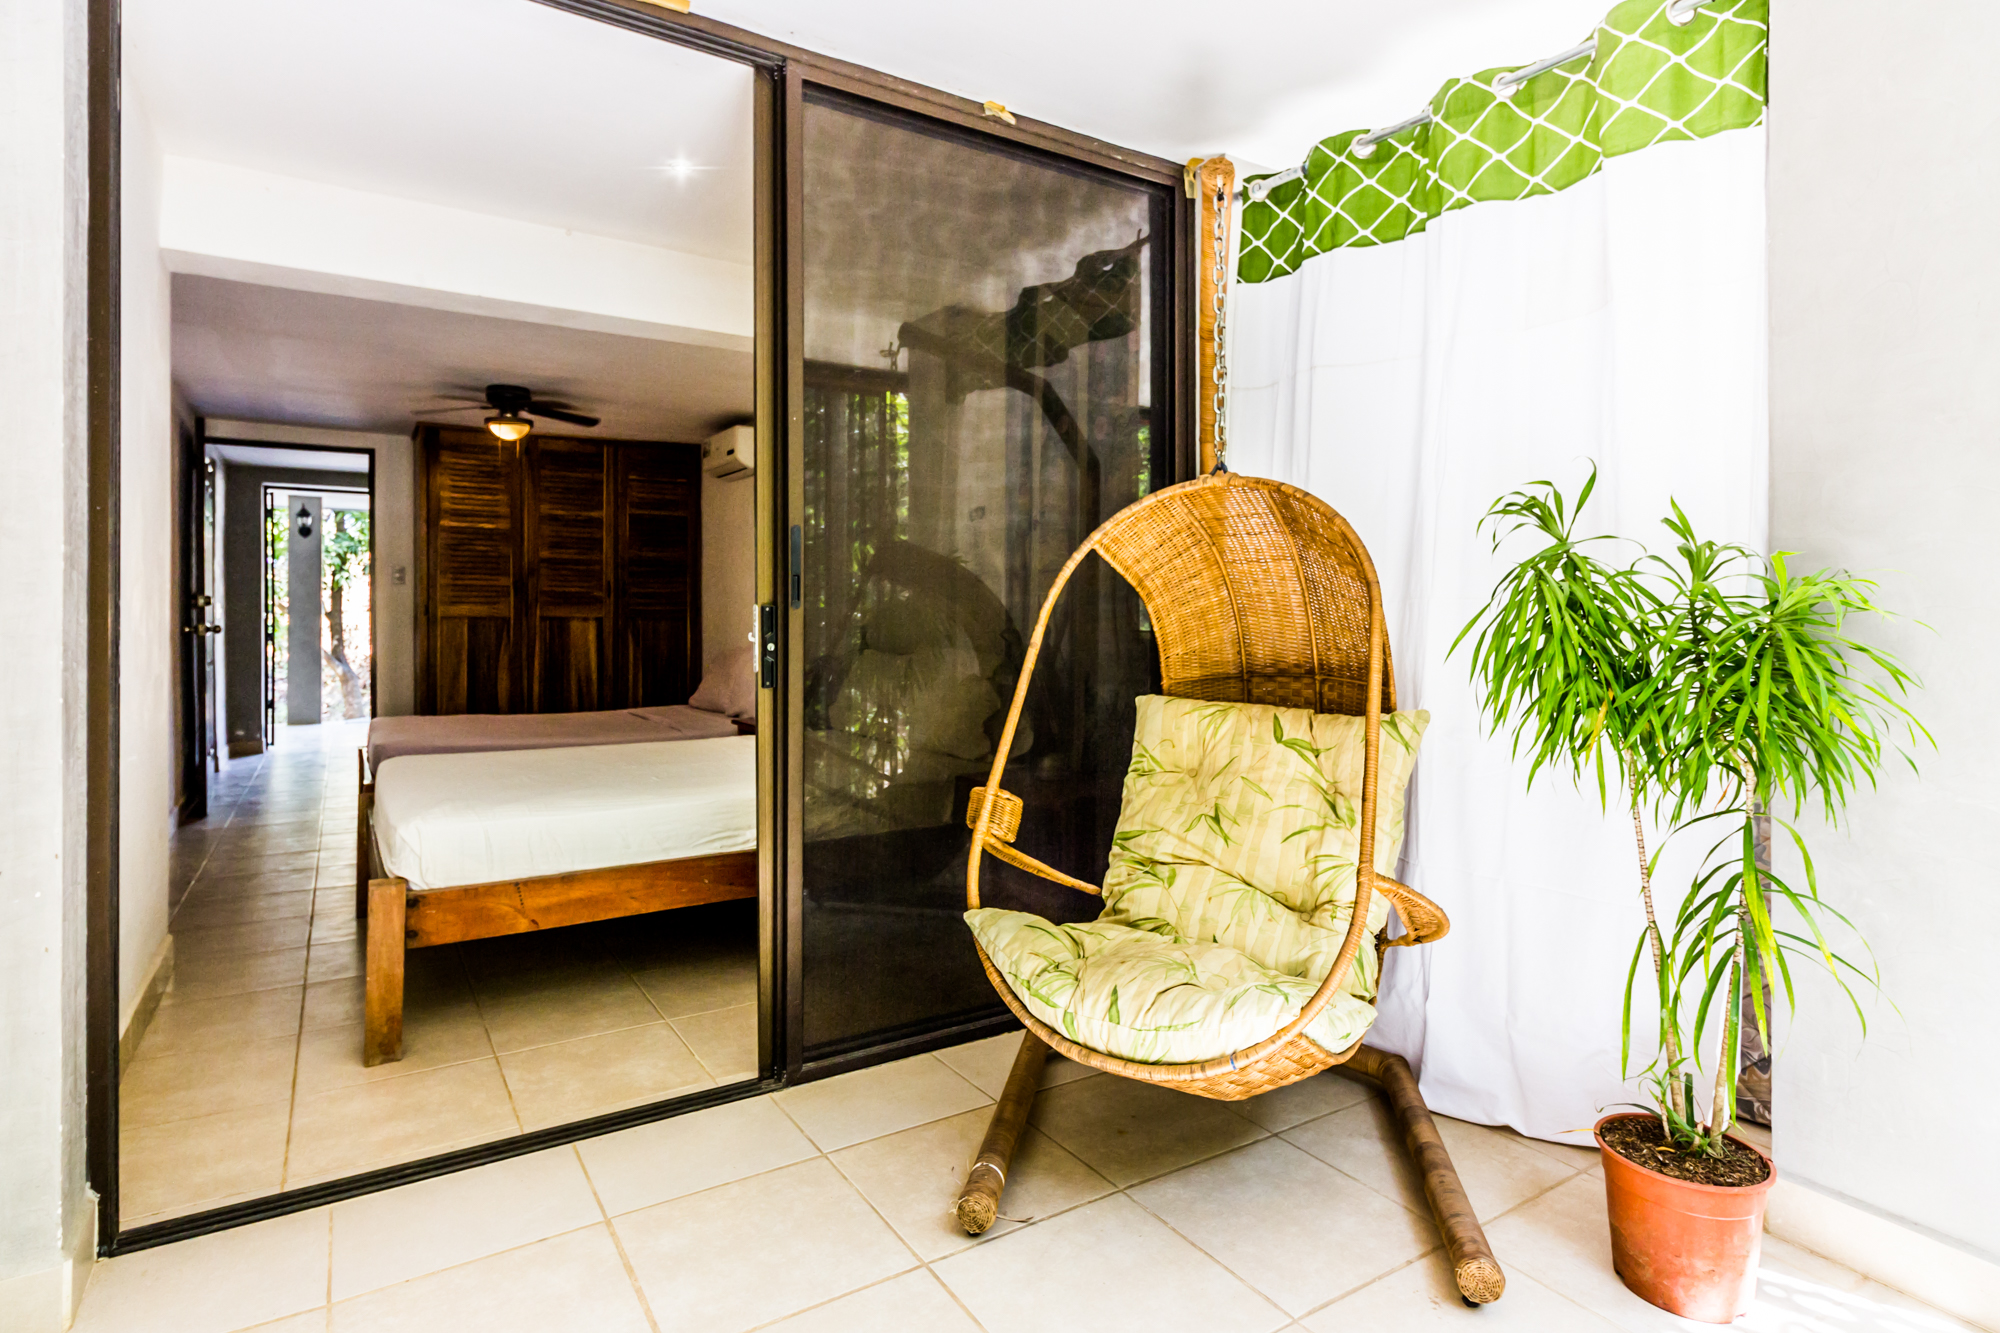 2 Bedroom Downstairs Apartment Large Outdoor Lounge Area Fully Equipped Kitchen Air Conditioning Close to Amenities Sleeps 6 Wifi  CLICK FOR MORE DETAILS